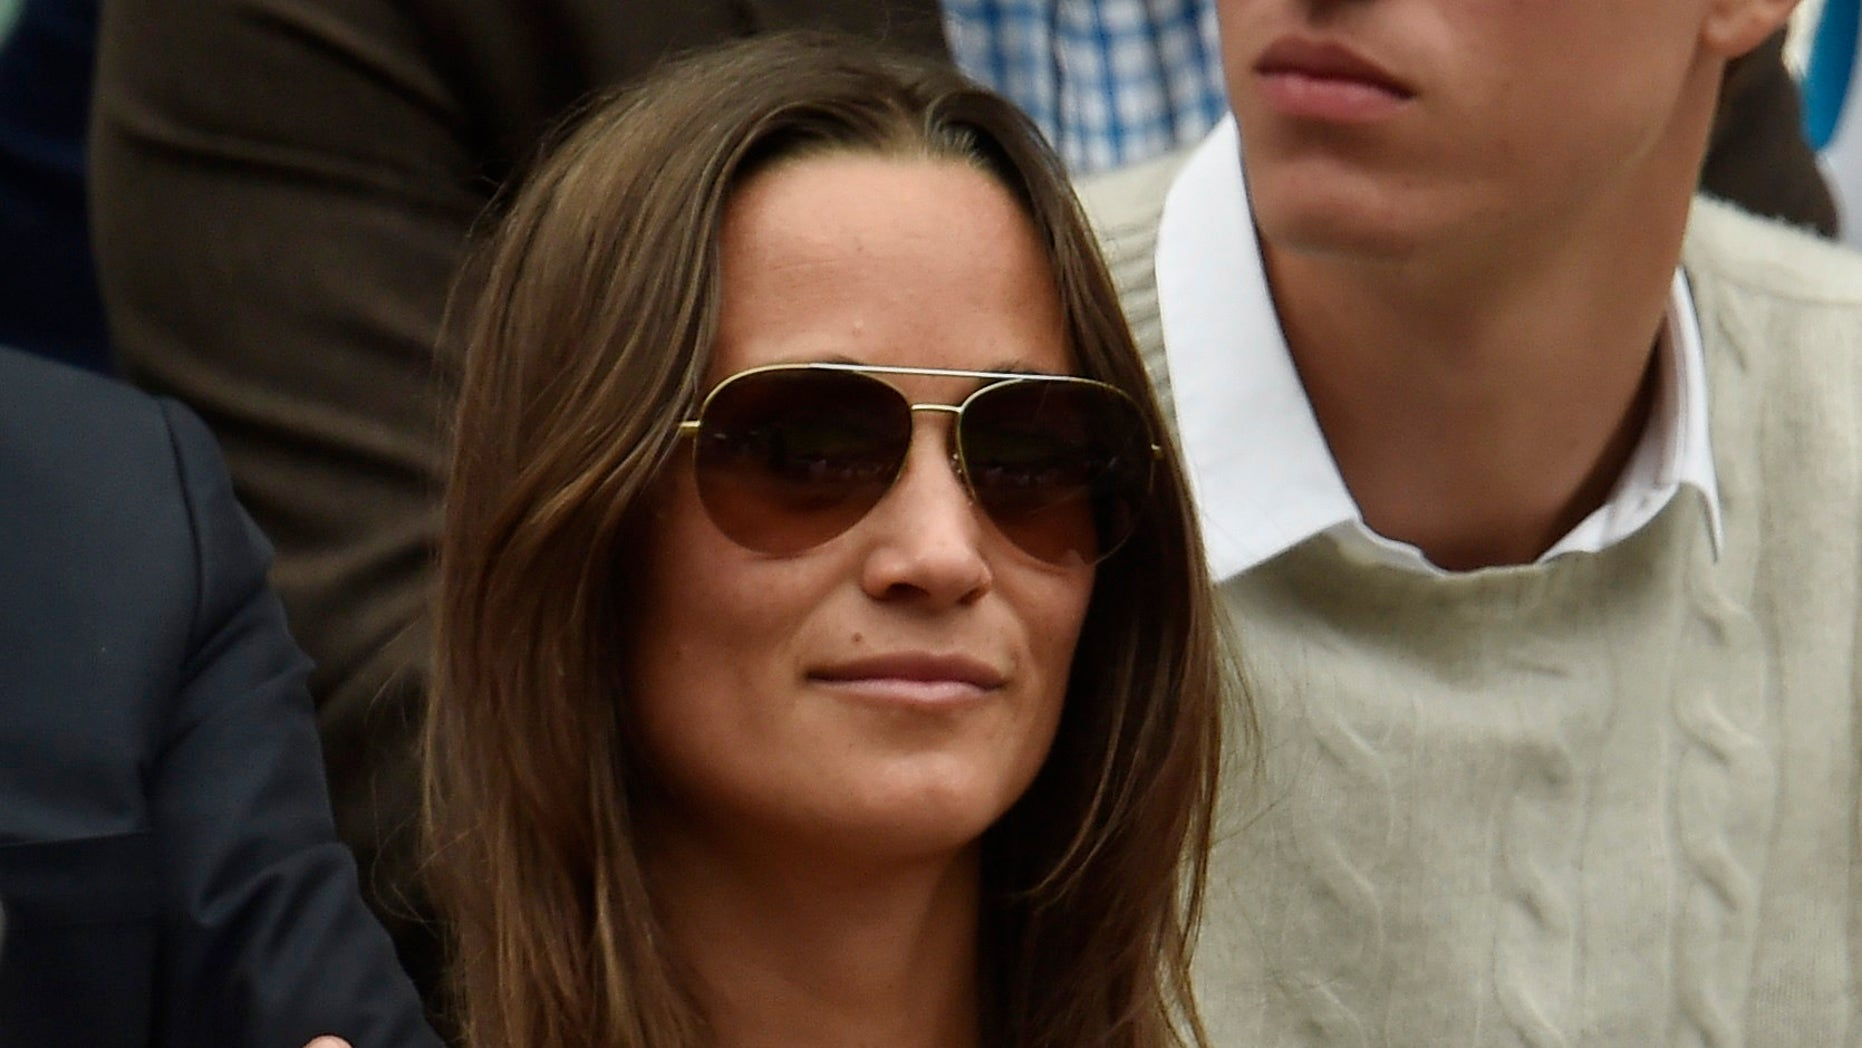 Pippa Middleton on Centre Court at the Wimbledon Tennis Championships in London, July 12, 2015.                                                       REUTERS/Toby Melville  - RTX1K3MD